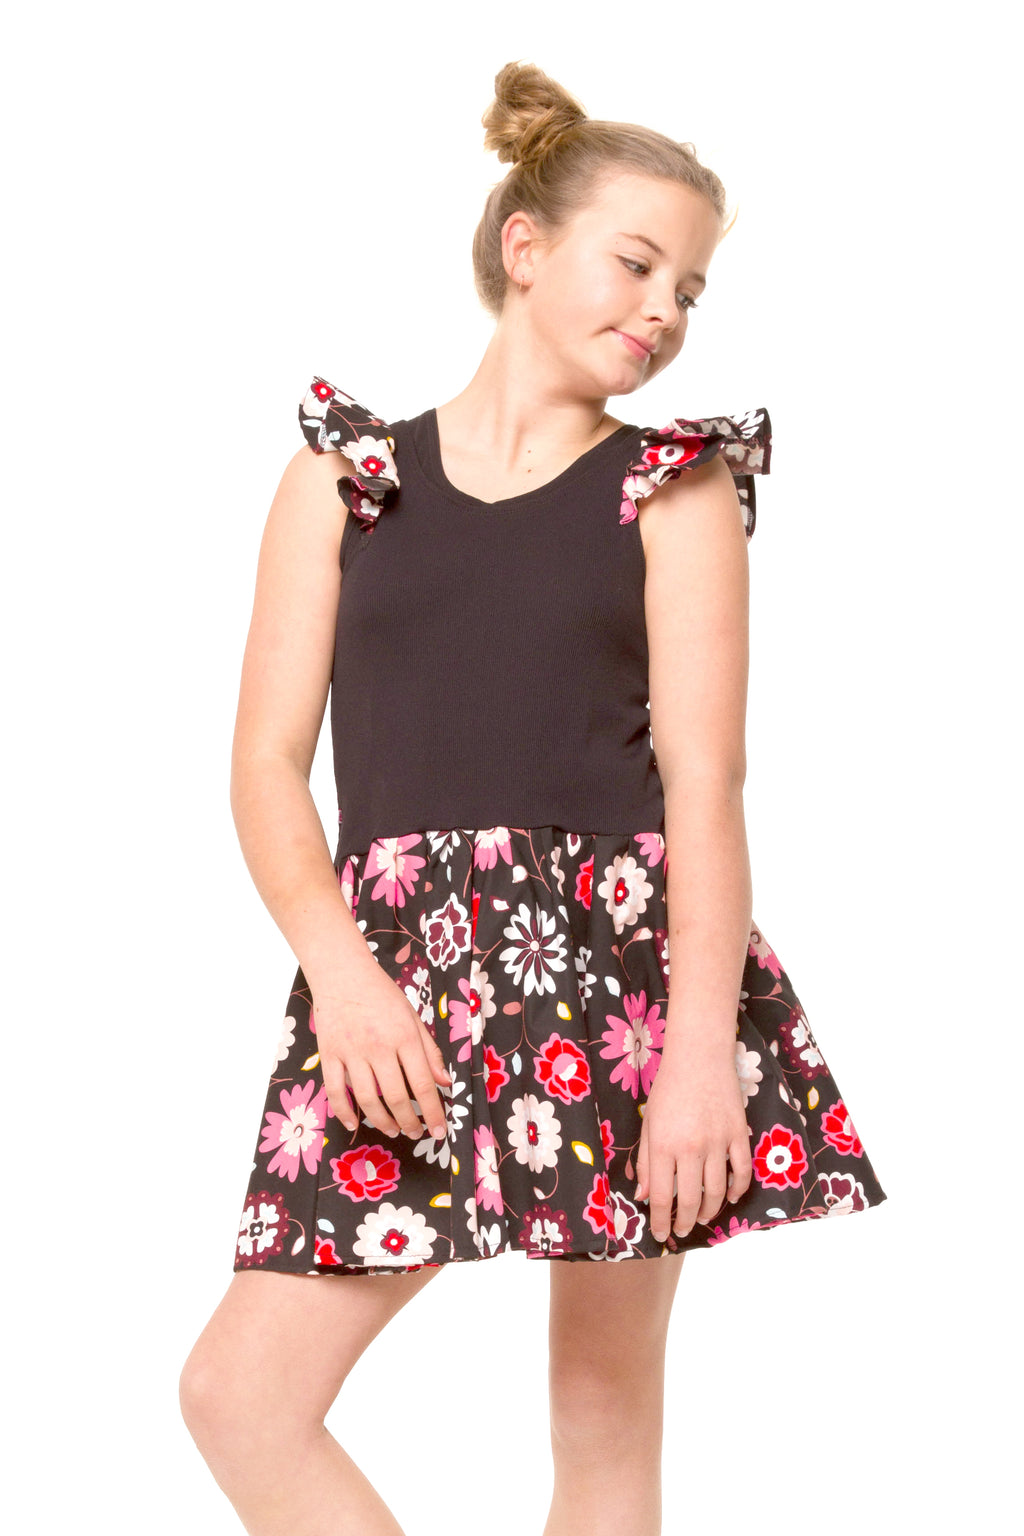 Scarlett Girls Dress - Floral